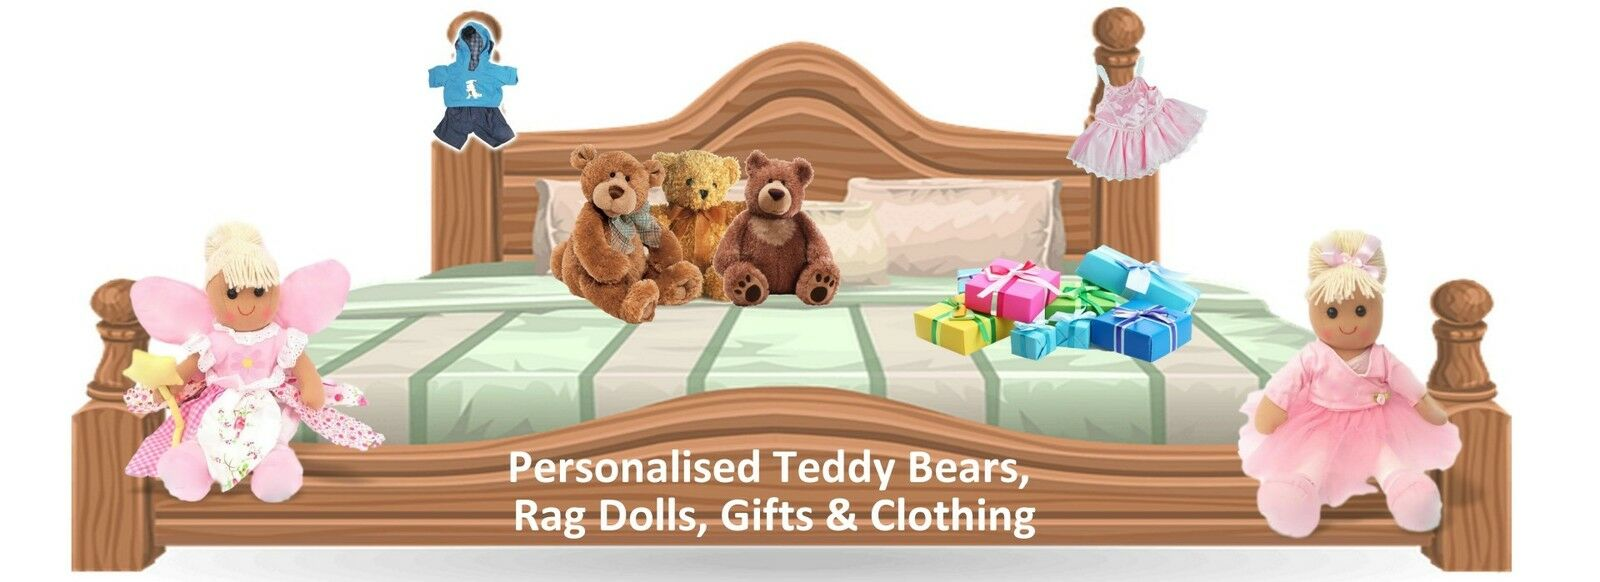 Personalised Bears, Dolls & Gifts